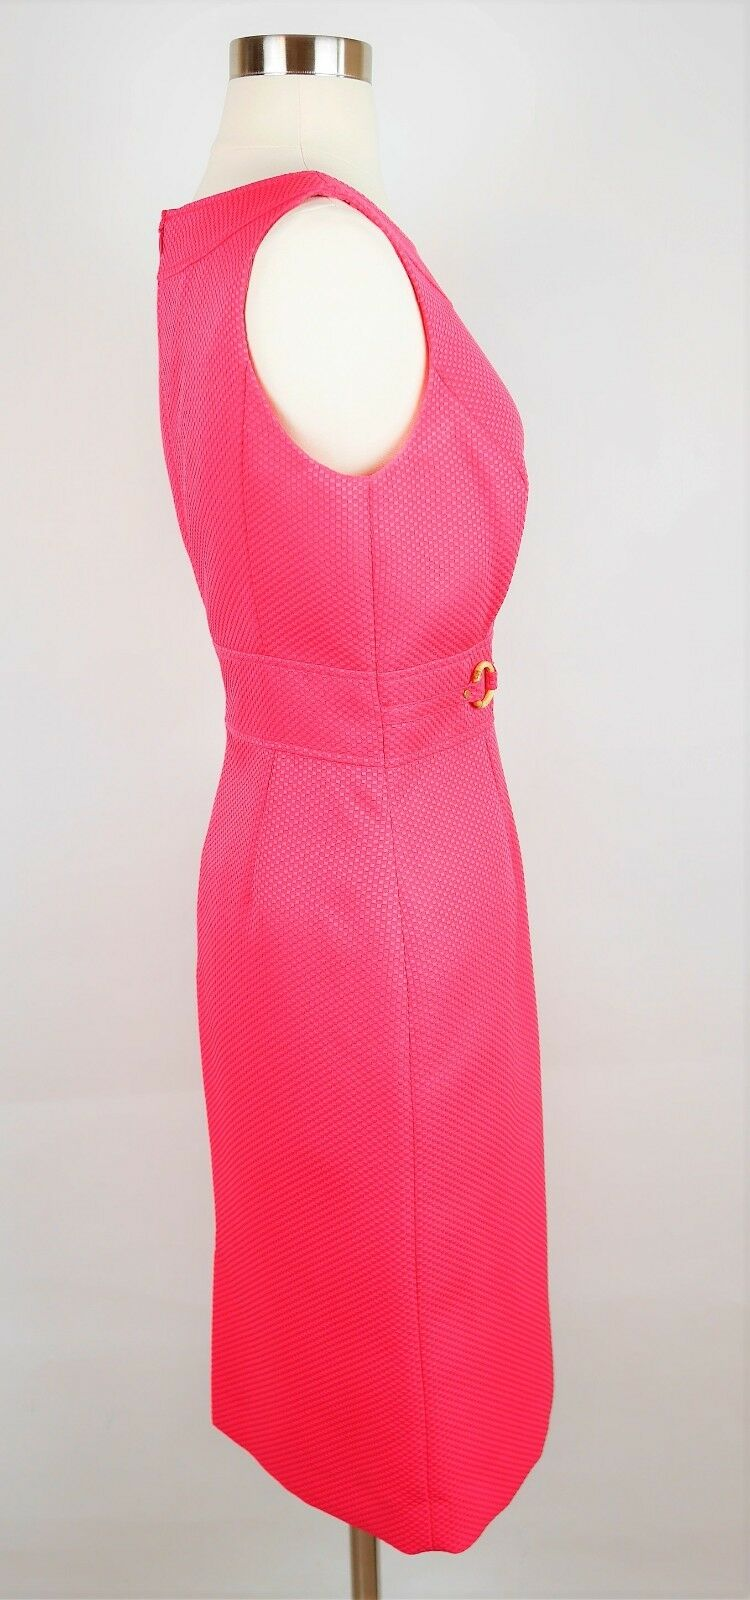 1331ae9e ... TAHARI ASL Size 6 - HOT PINK PINK PINK TEXTURED PRINT SLEEVELESS SHEATH  DRESS Knee Length ...